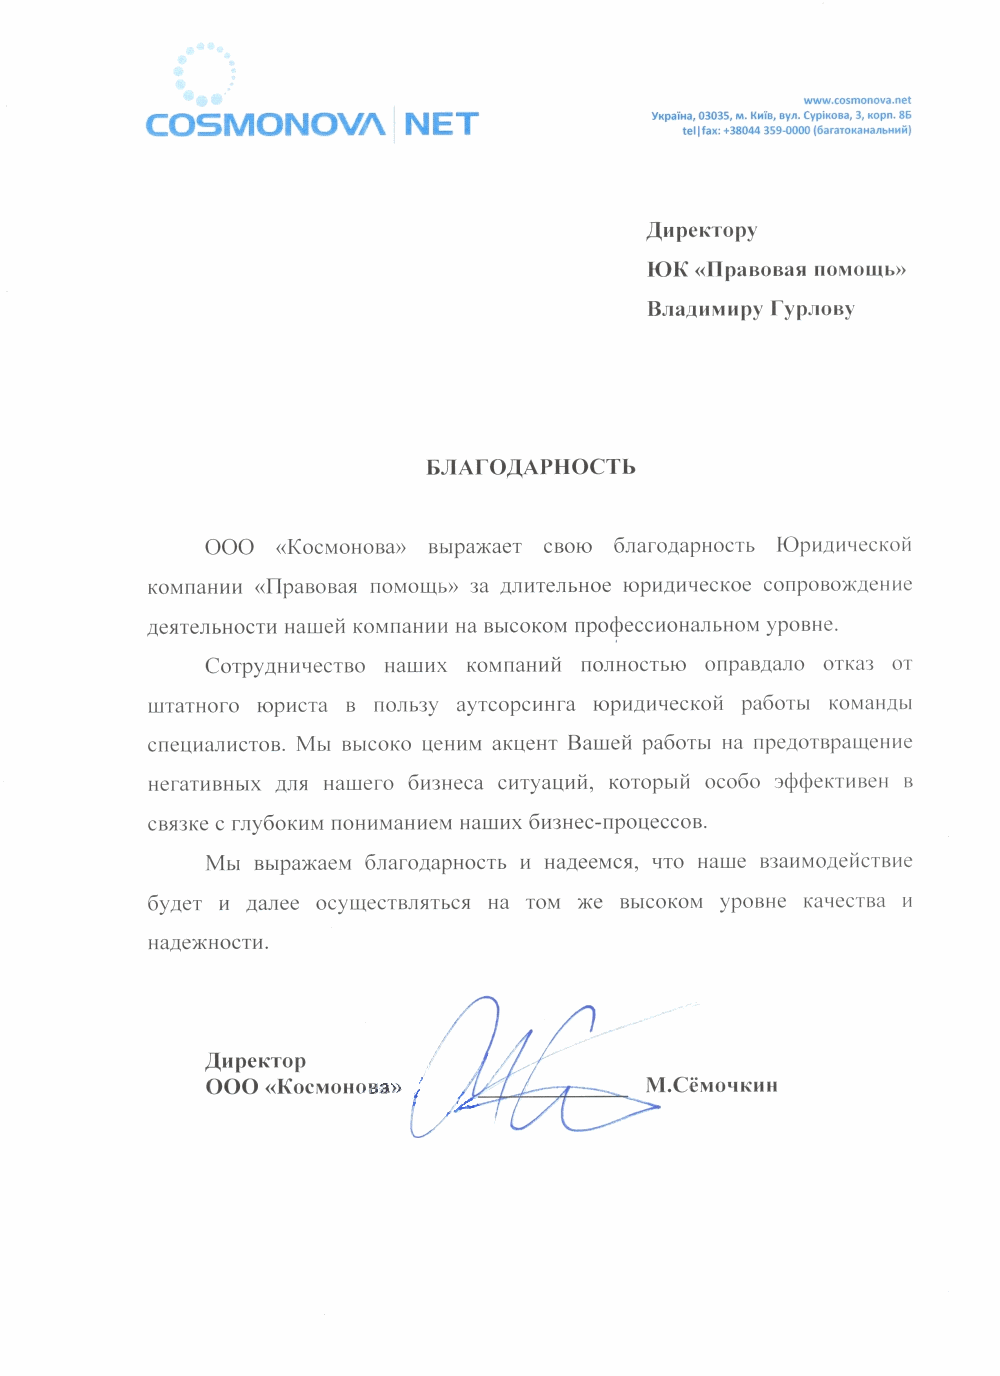 all letters of appreciation llc cosmonova expresses its gratitude to law firm pravova dopomoga for a lasting highly professional legal support of our company